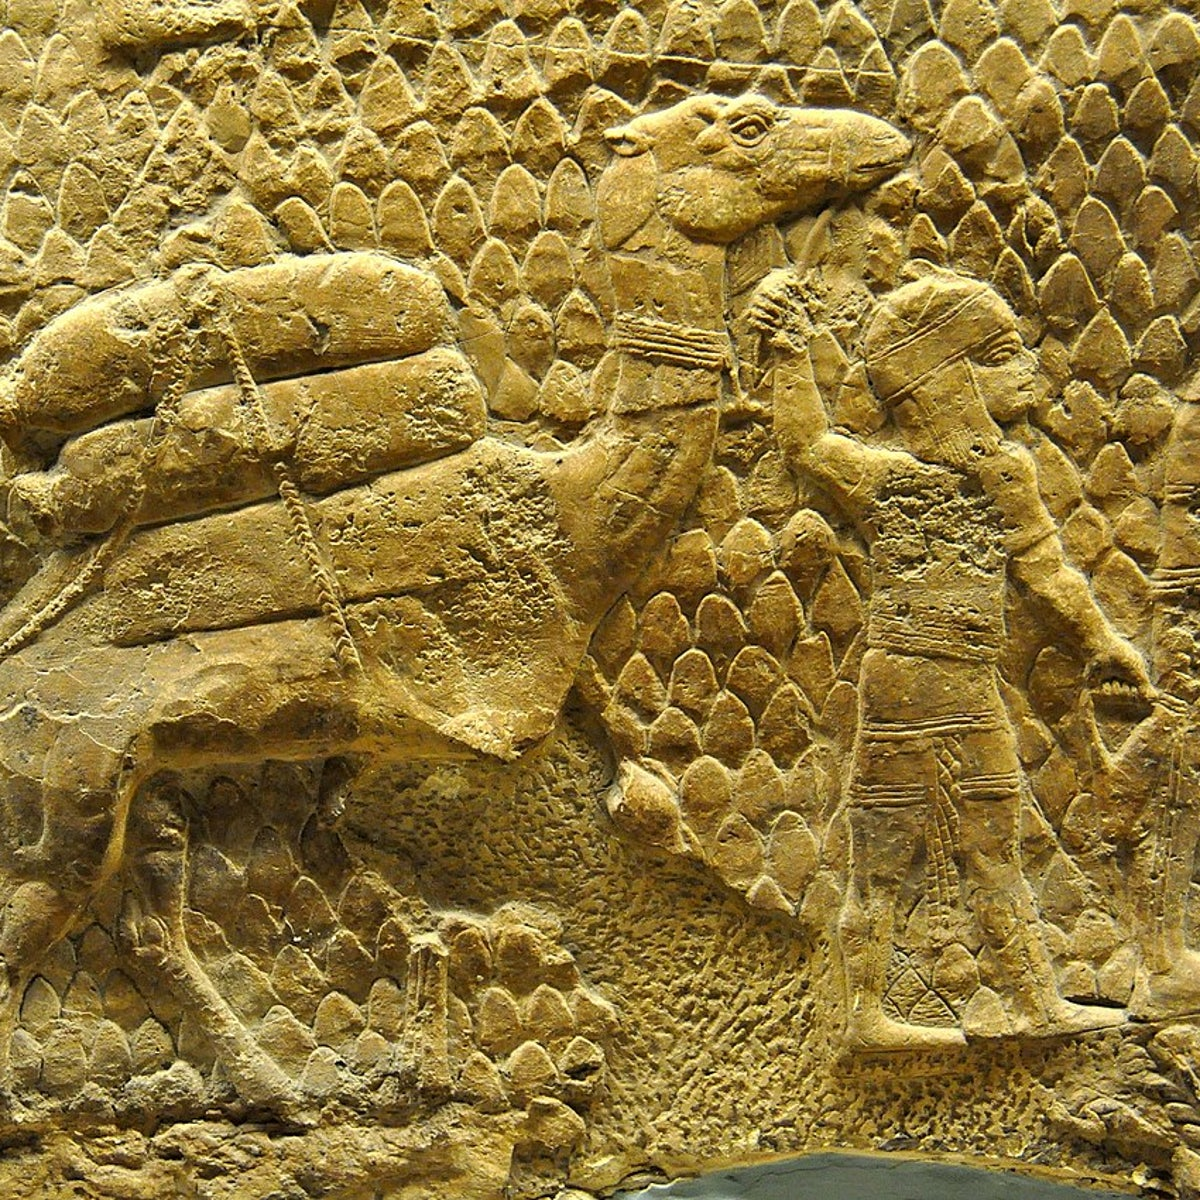 Detail of a gypsum wall relief depicting the deportation of the inhabitants of the city of Lachish by the Assyrian army. Reign of Sennacherib, 700-692 BC, from Nineveh, Iraq, currently housed in the British Museum